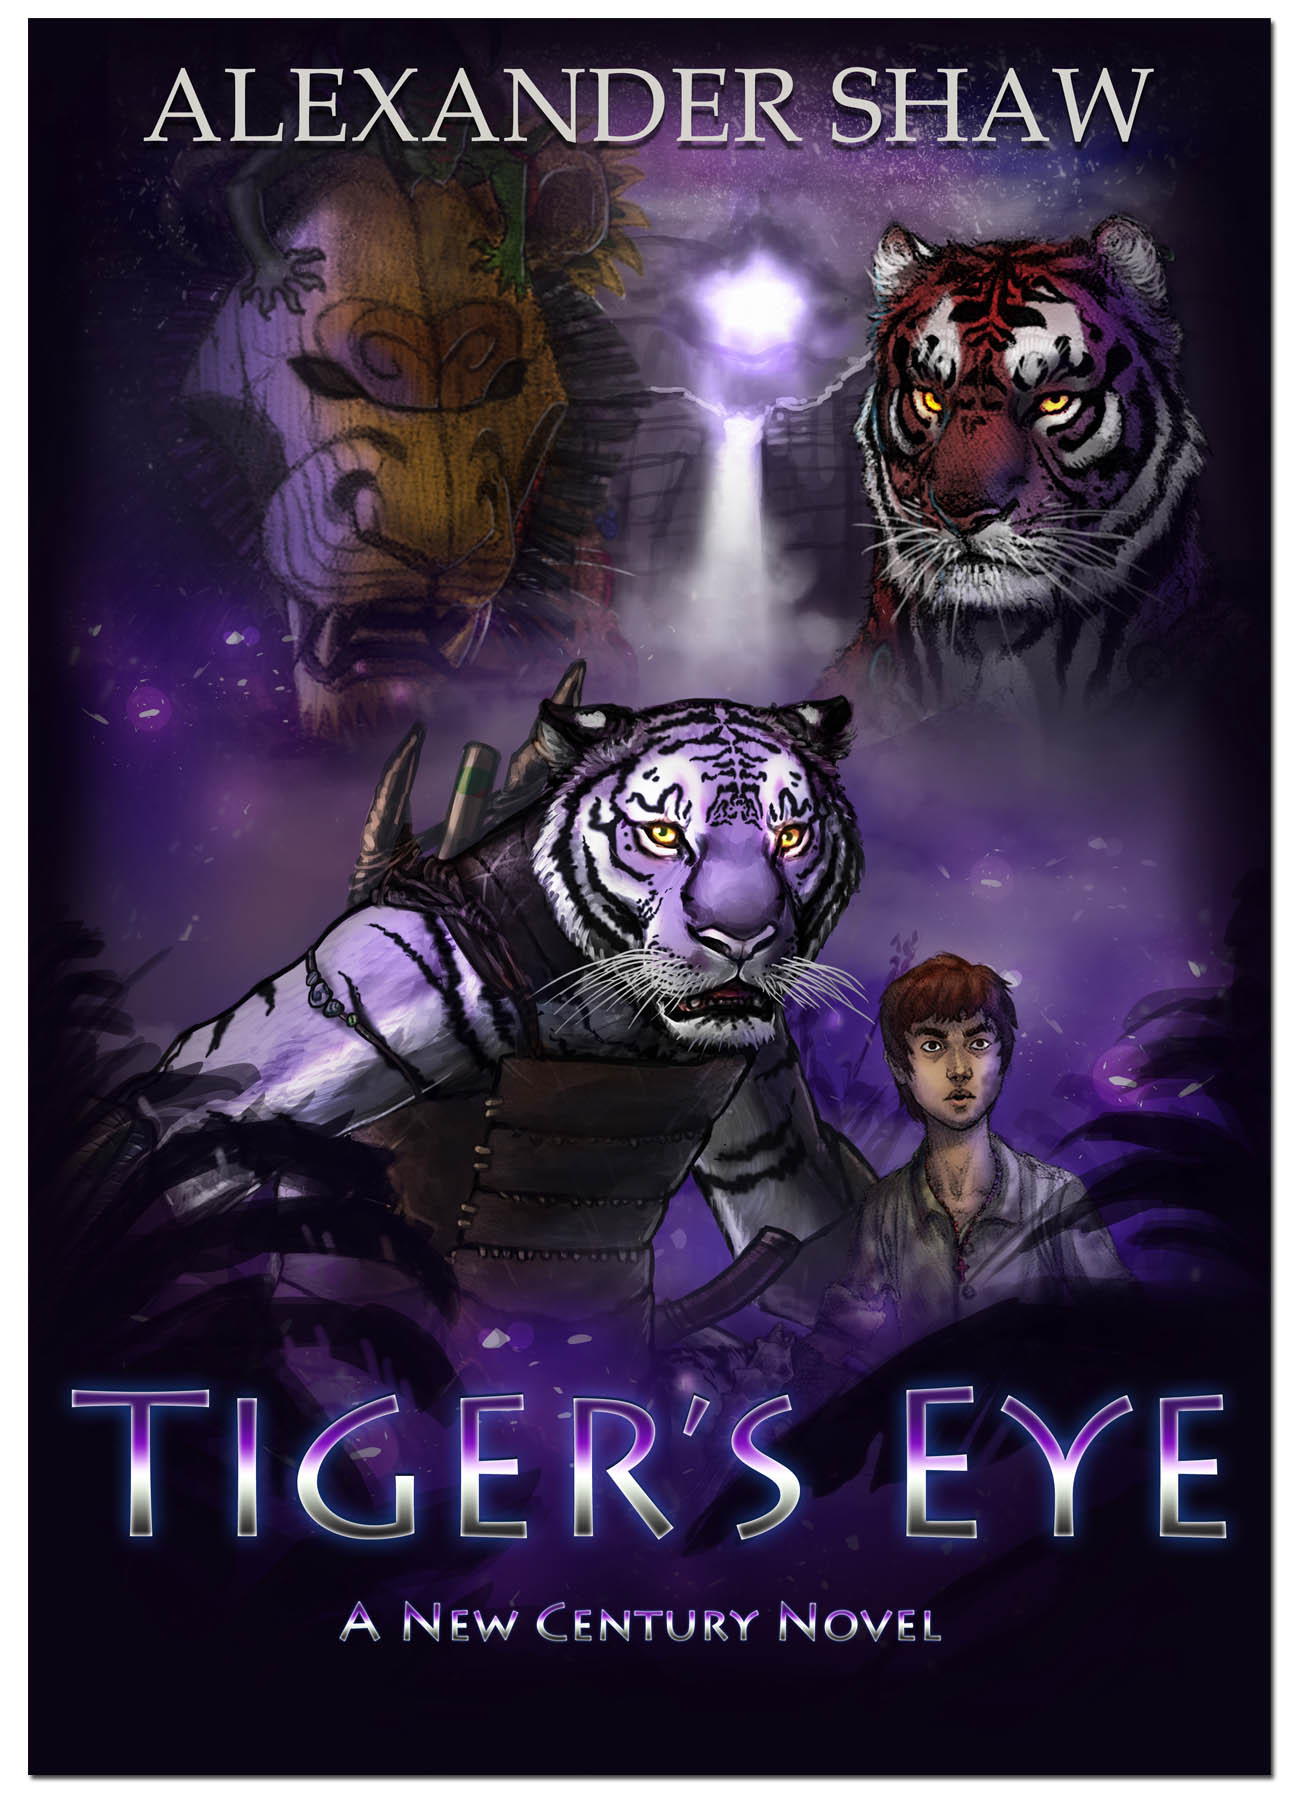 How far would you go to save your family? - Set on an alternate Earth where great cats evolved to become the dominant species, Tiger's Eye follows Hrao, a somewhat obsessive-compulsive hunter who one day discovers a human child adrift in the river. This is the story of her epic quest to get rid of him.They journey out into a land shrouded in mystery, at once ancient and new, beset on all sides by dangers both strange and personal.Hrao is going to have to let her guard down a little in order to forge the kind of companionship that might allow at least one of them to survive this perilous road.Winner of the Best Novel category of the Ursa Major Awards for anthropomorphic fiction, 2015.